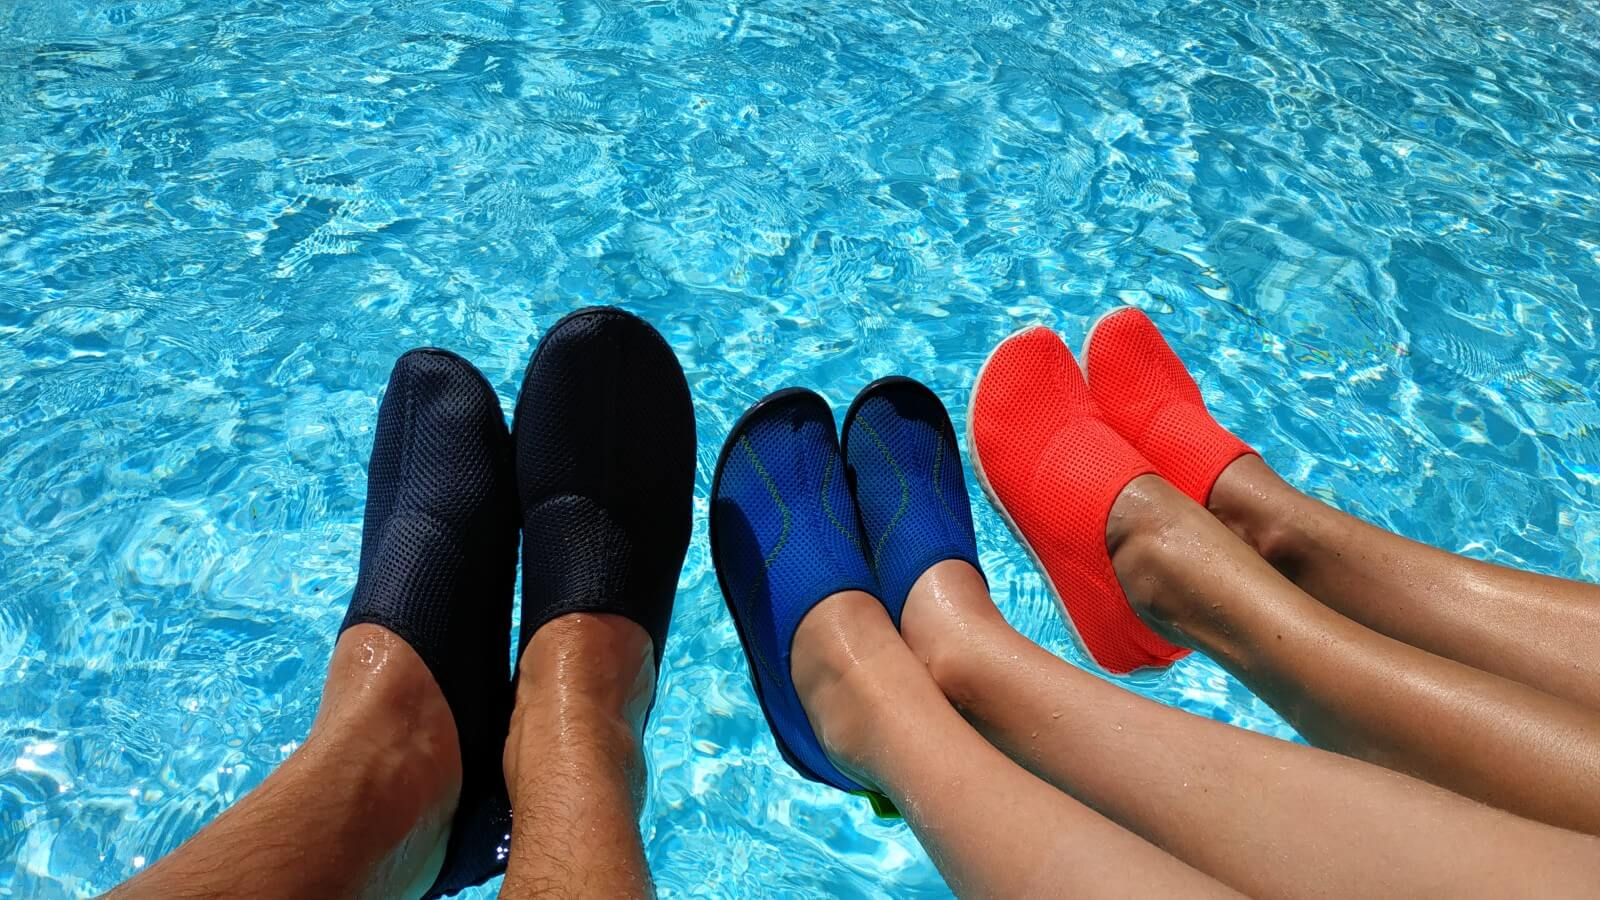 Family testing out a variety of water shoes at the swimming pool